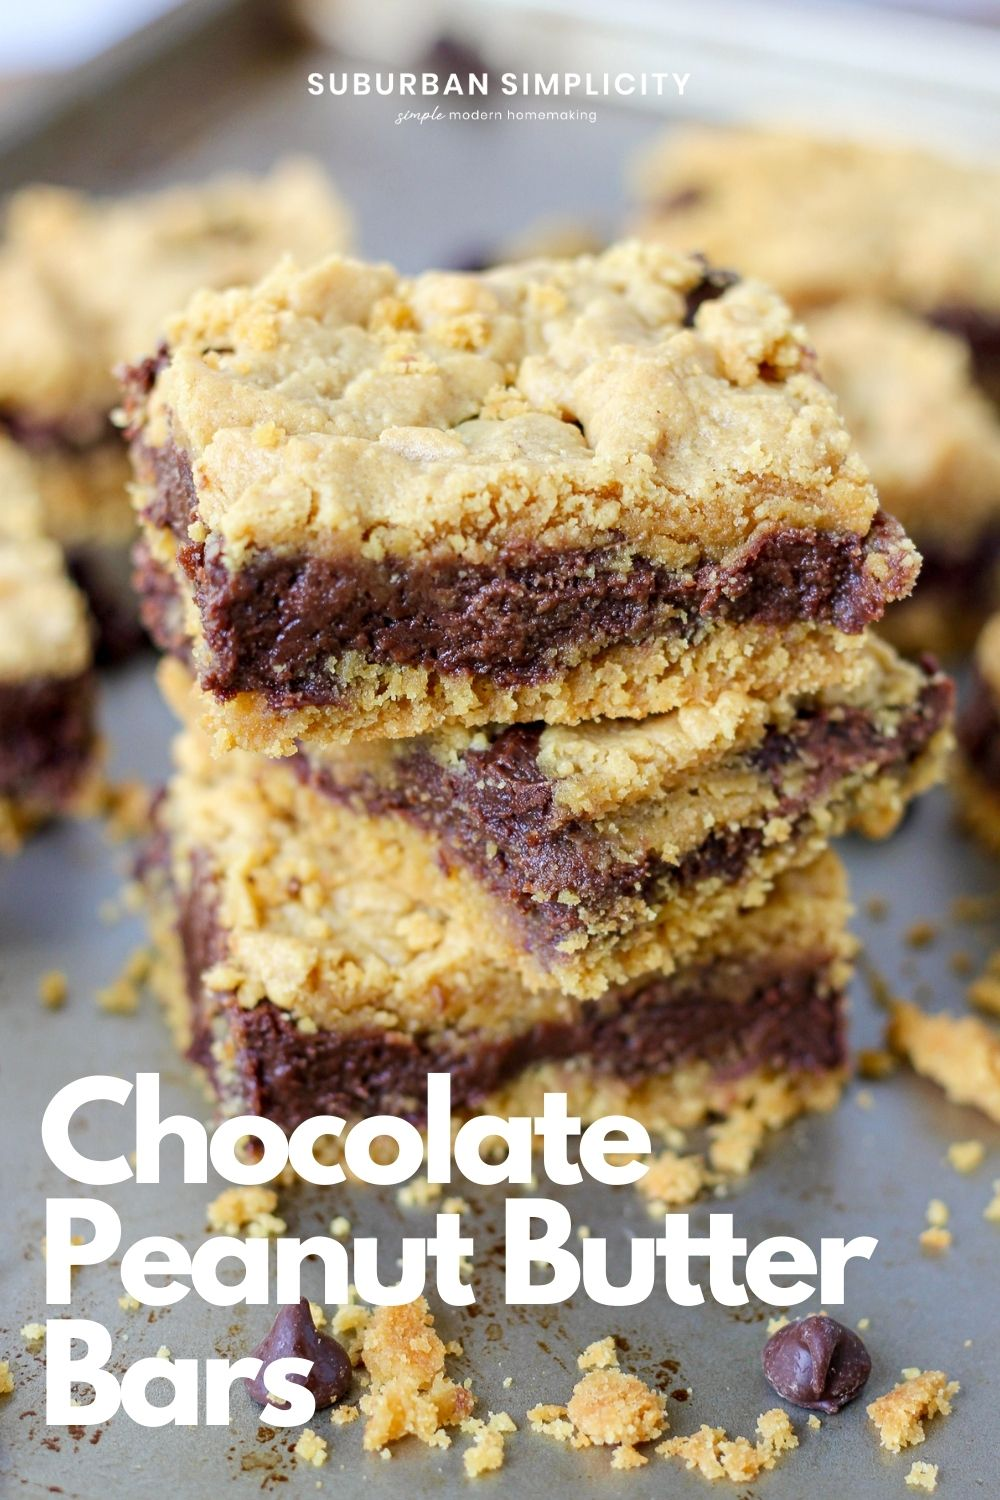 Peanut Butter Chocolate Bars makethe perfect dessert! These cake mix bars come together easilywith yellow cake mix, chocolate chips and peanut butter to make everyday baking easy and delicious.